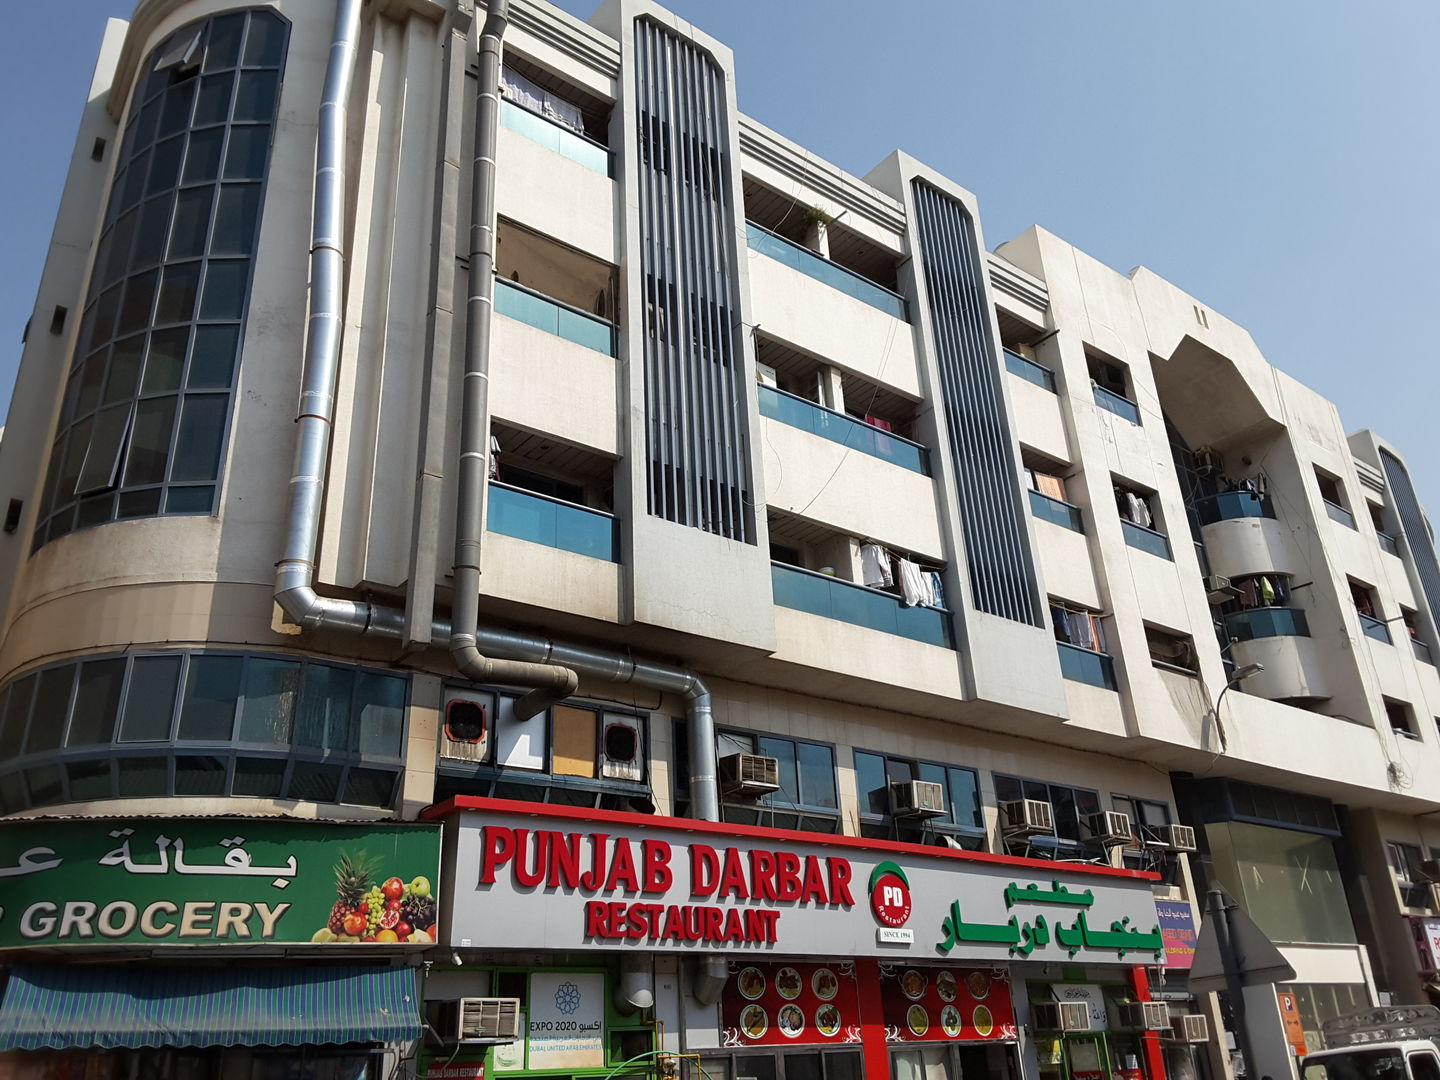 HiDubai-business-punjab-darbar-restaurant-food-beverage-restaurants-bars-ayal-nasir-dubai-2